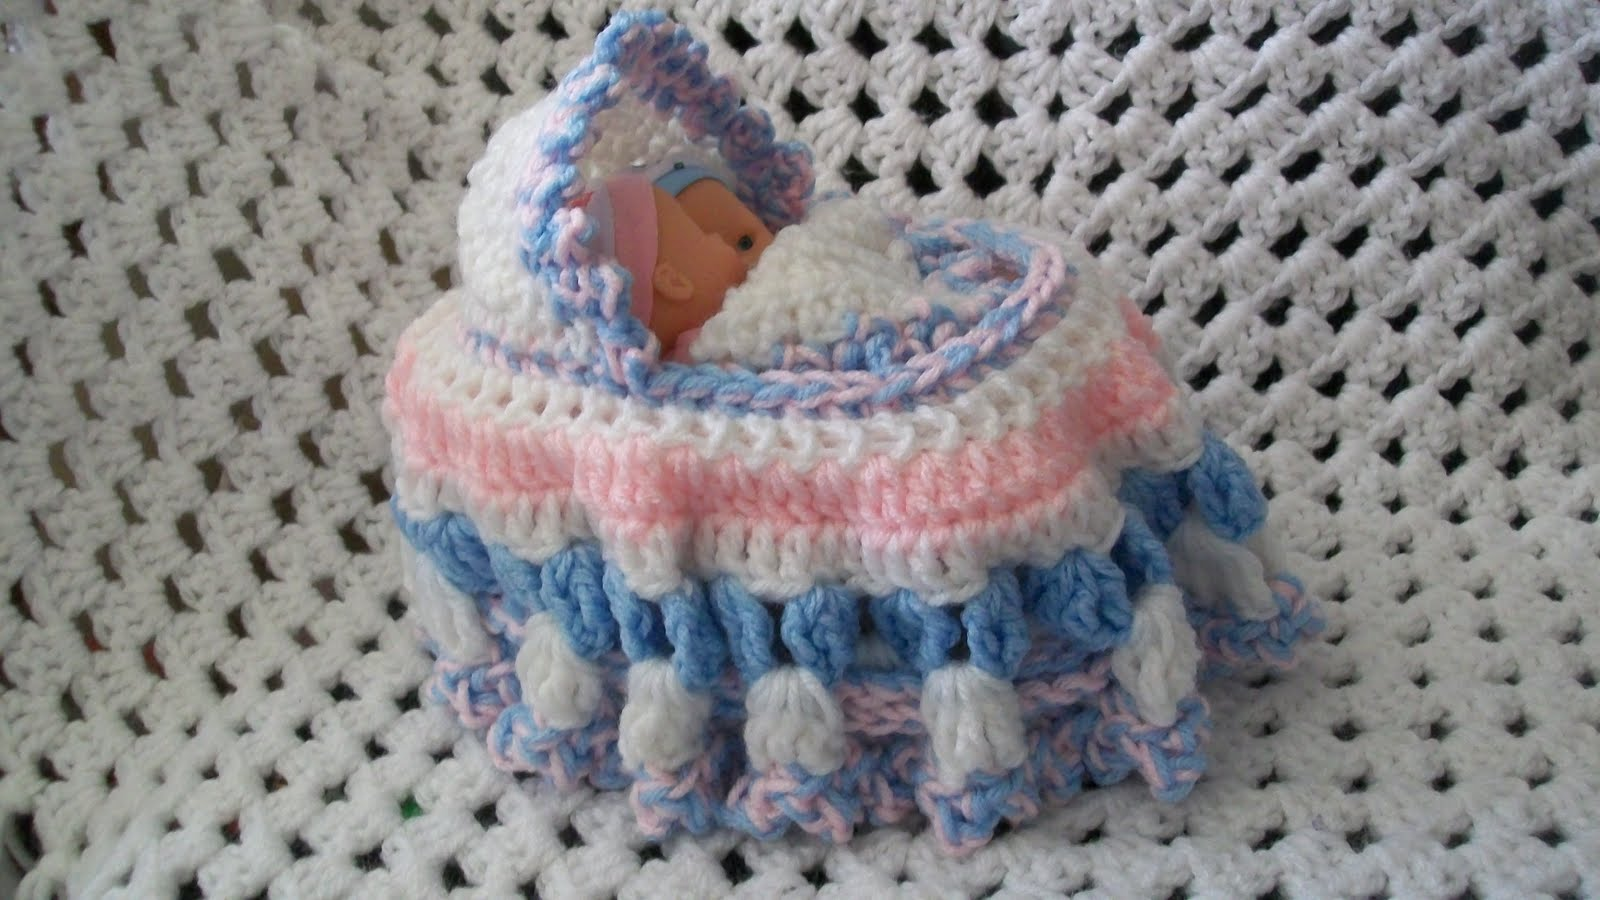 Crochet Baby Cradle Purse Pattern : Cradle Crochet Pattern Purse Crochet Guild